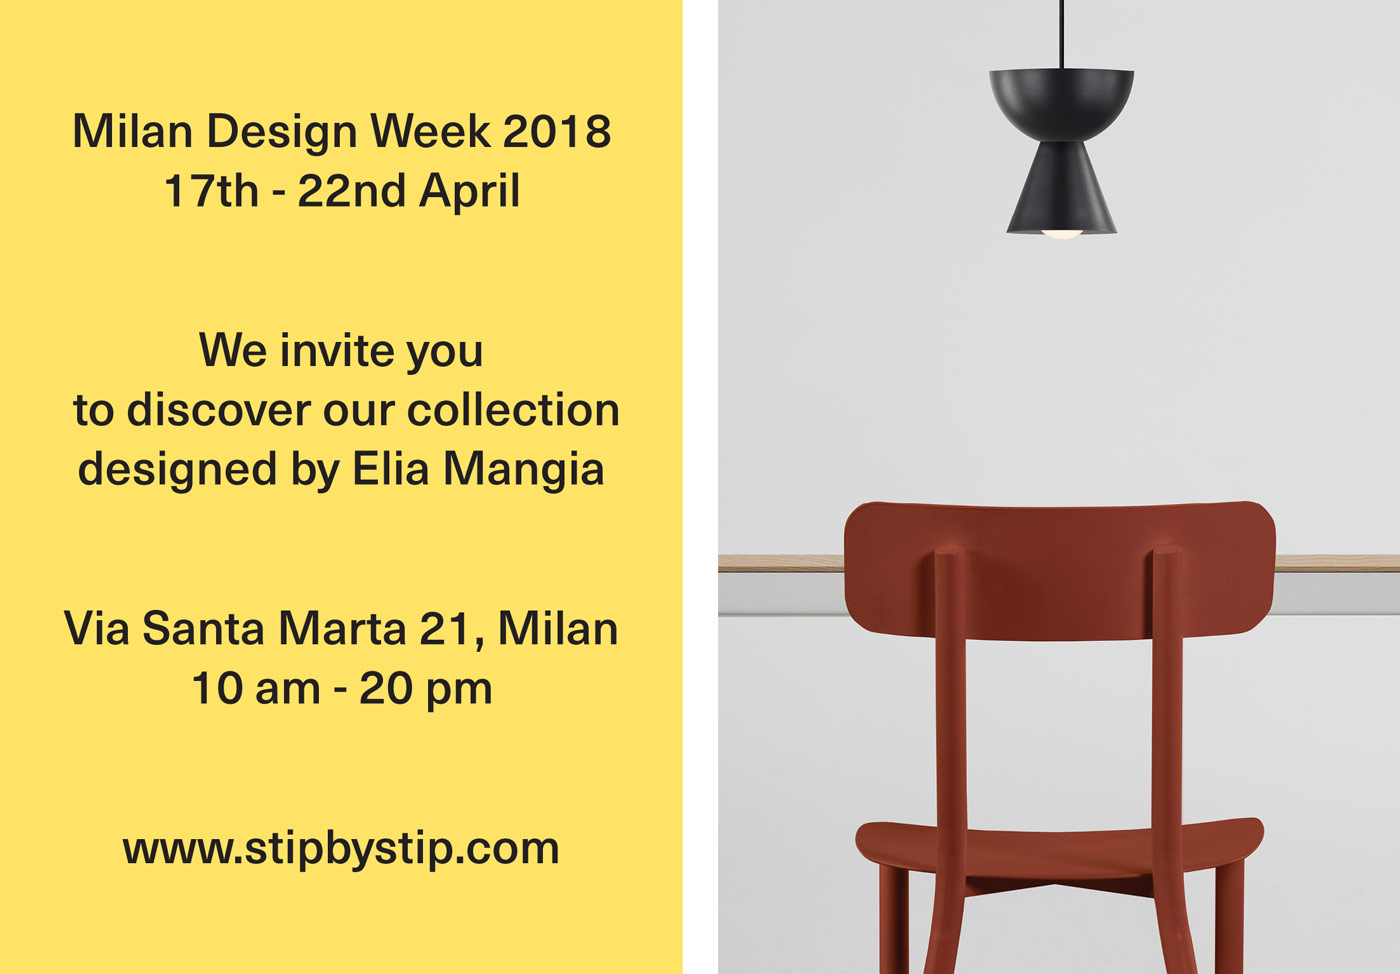 We invite you to discover our collection designed by Elia Mangia